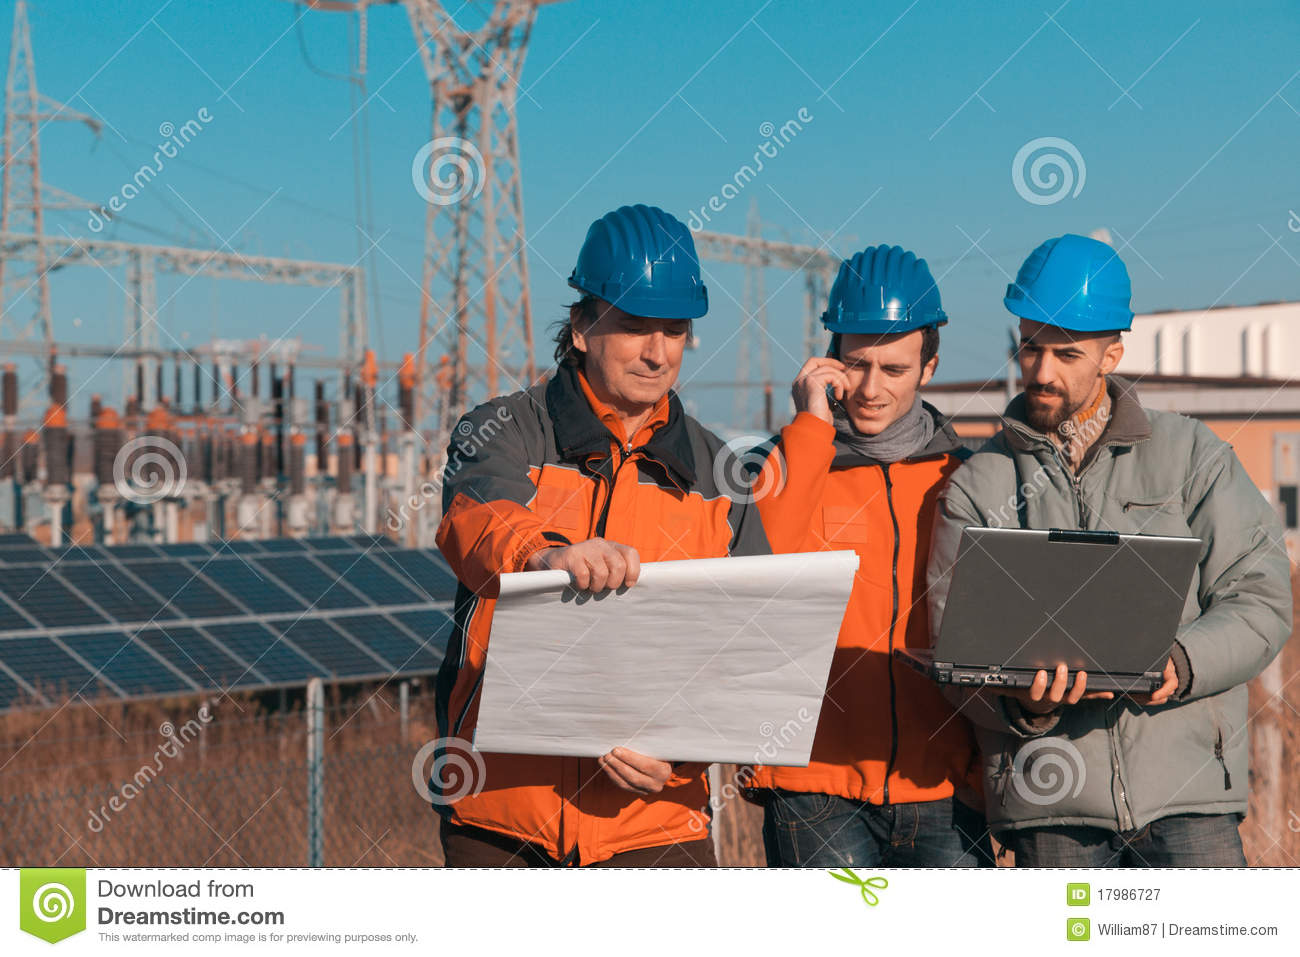 Room Design Builder Engineer At Work Royalty Free Stock Photography Image